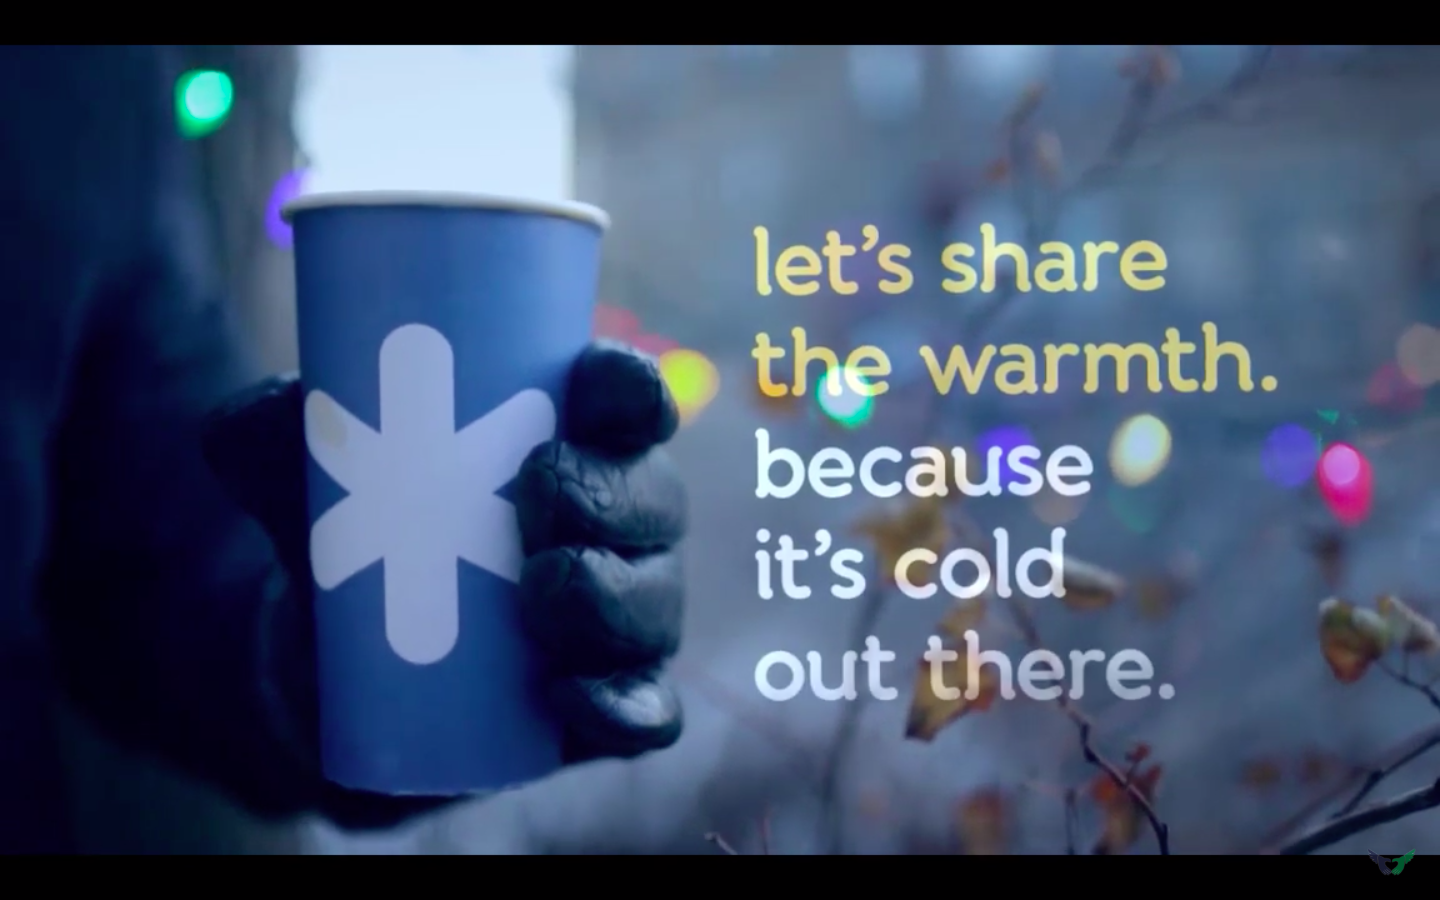 Let's share the warmth - Coldest Night of the Year 2019 Lethbridge